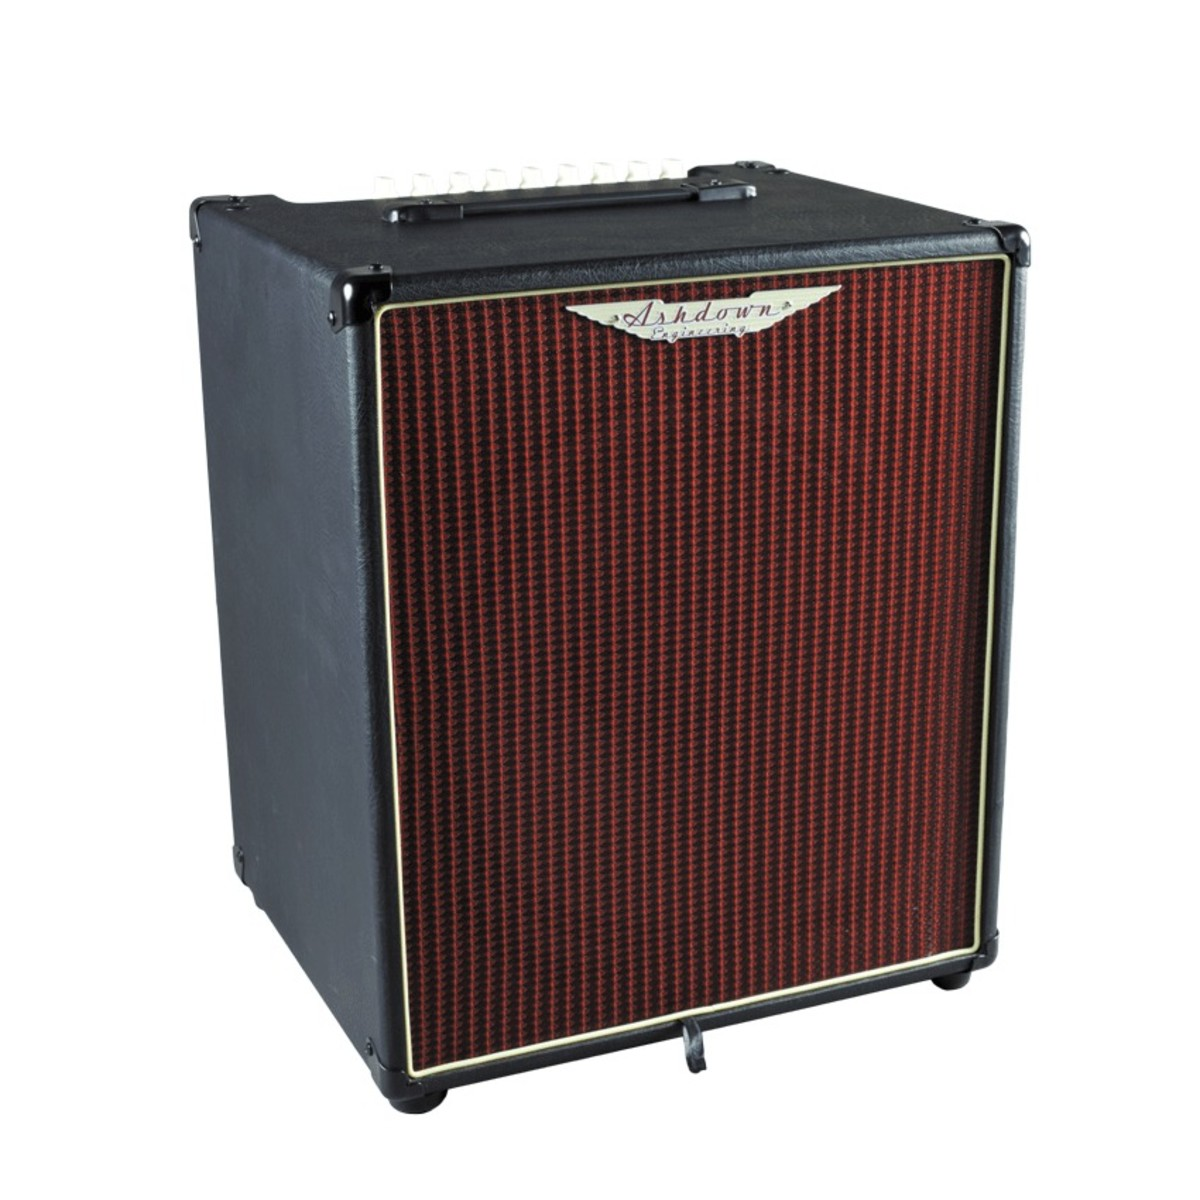 ashdown aaa 120 evo 15t lightweight 120w 1 x 15 bass amp combo at. Black Bedroom Furniture Sets. Home Design Ideas